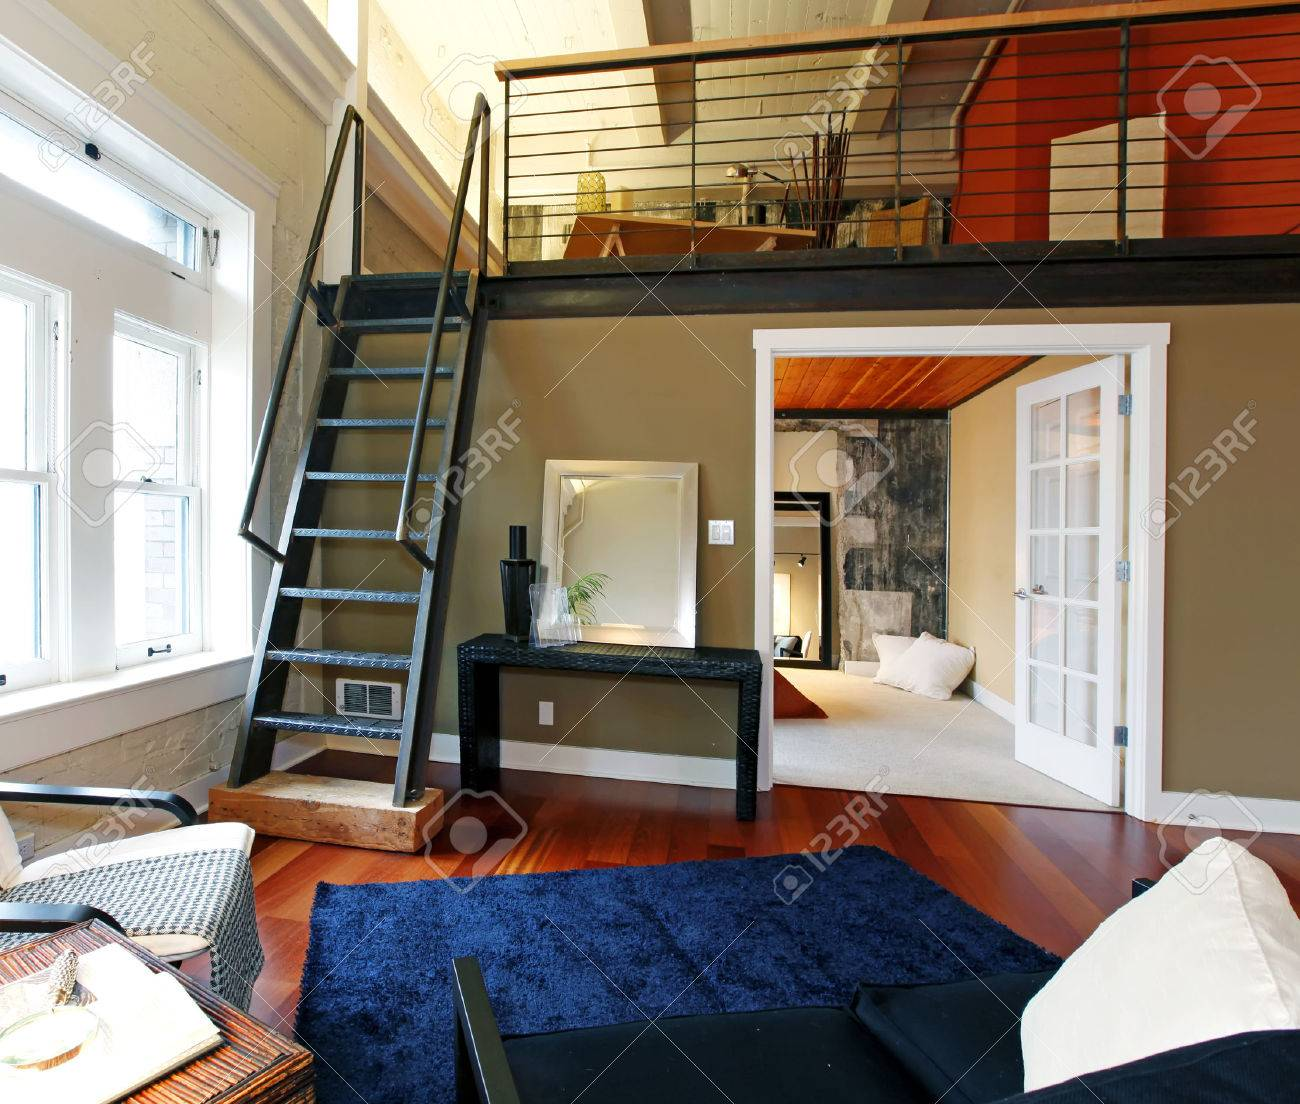 View of modern reconstructed living room with mezzanine area above bedroom.  View of iron steep